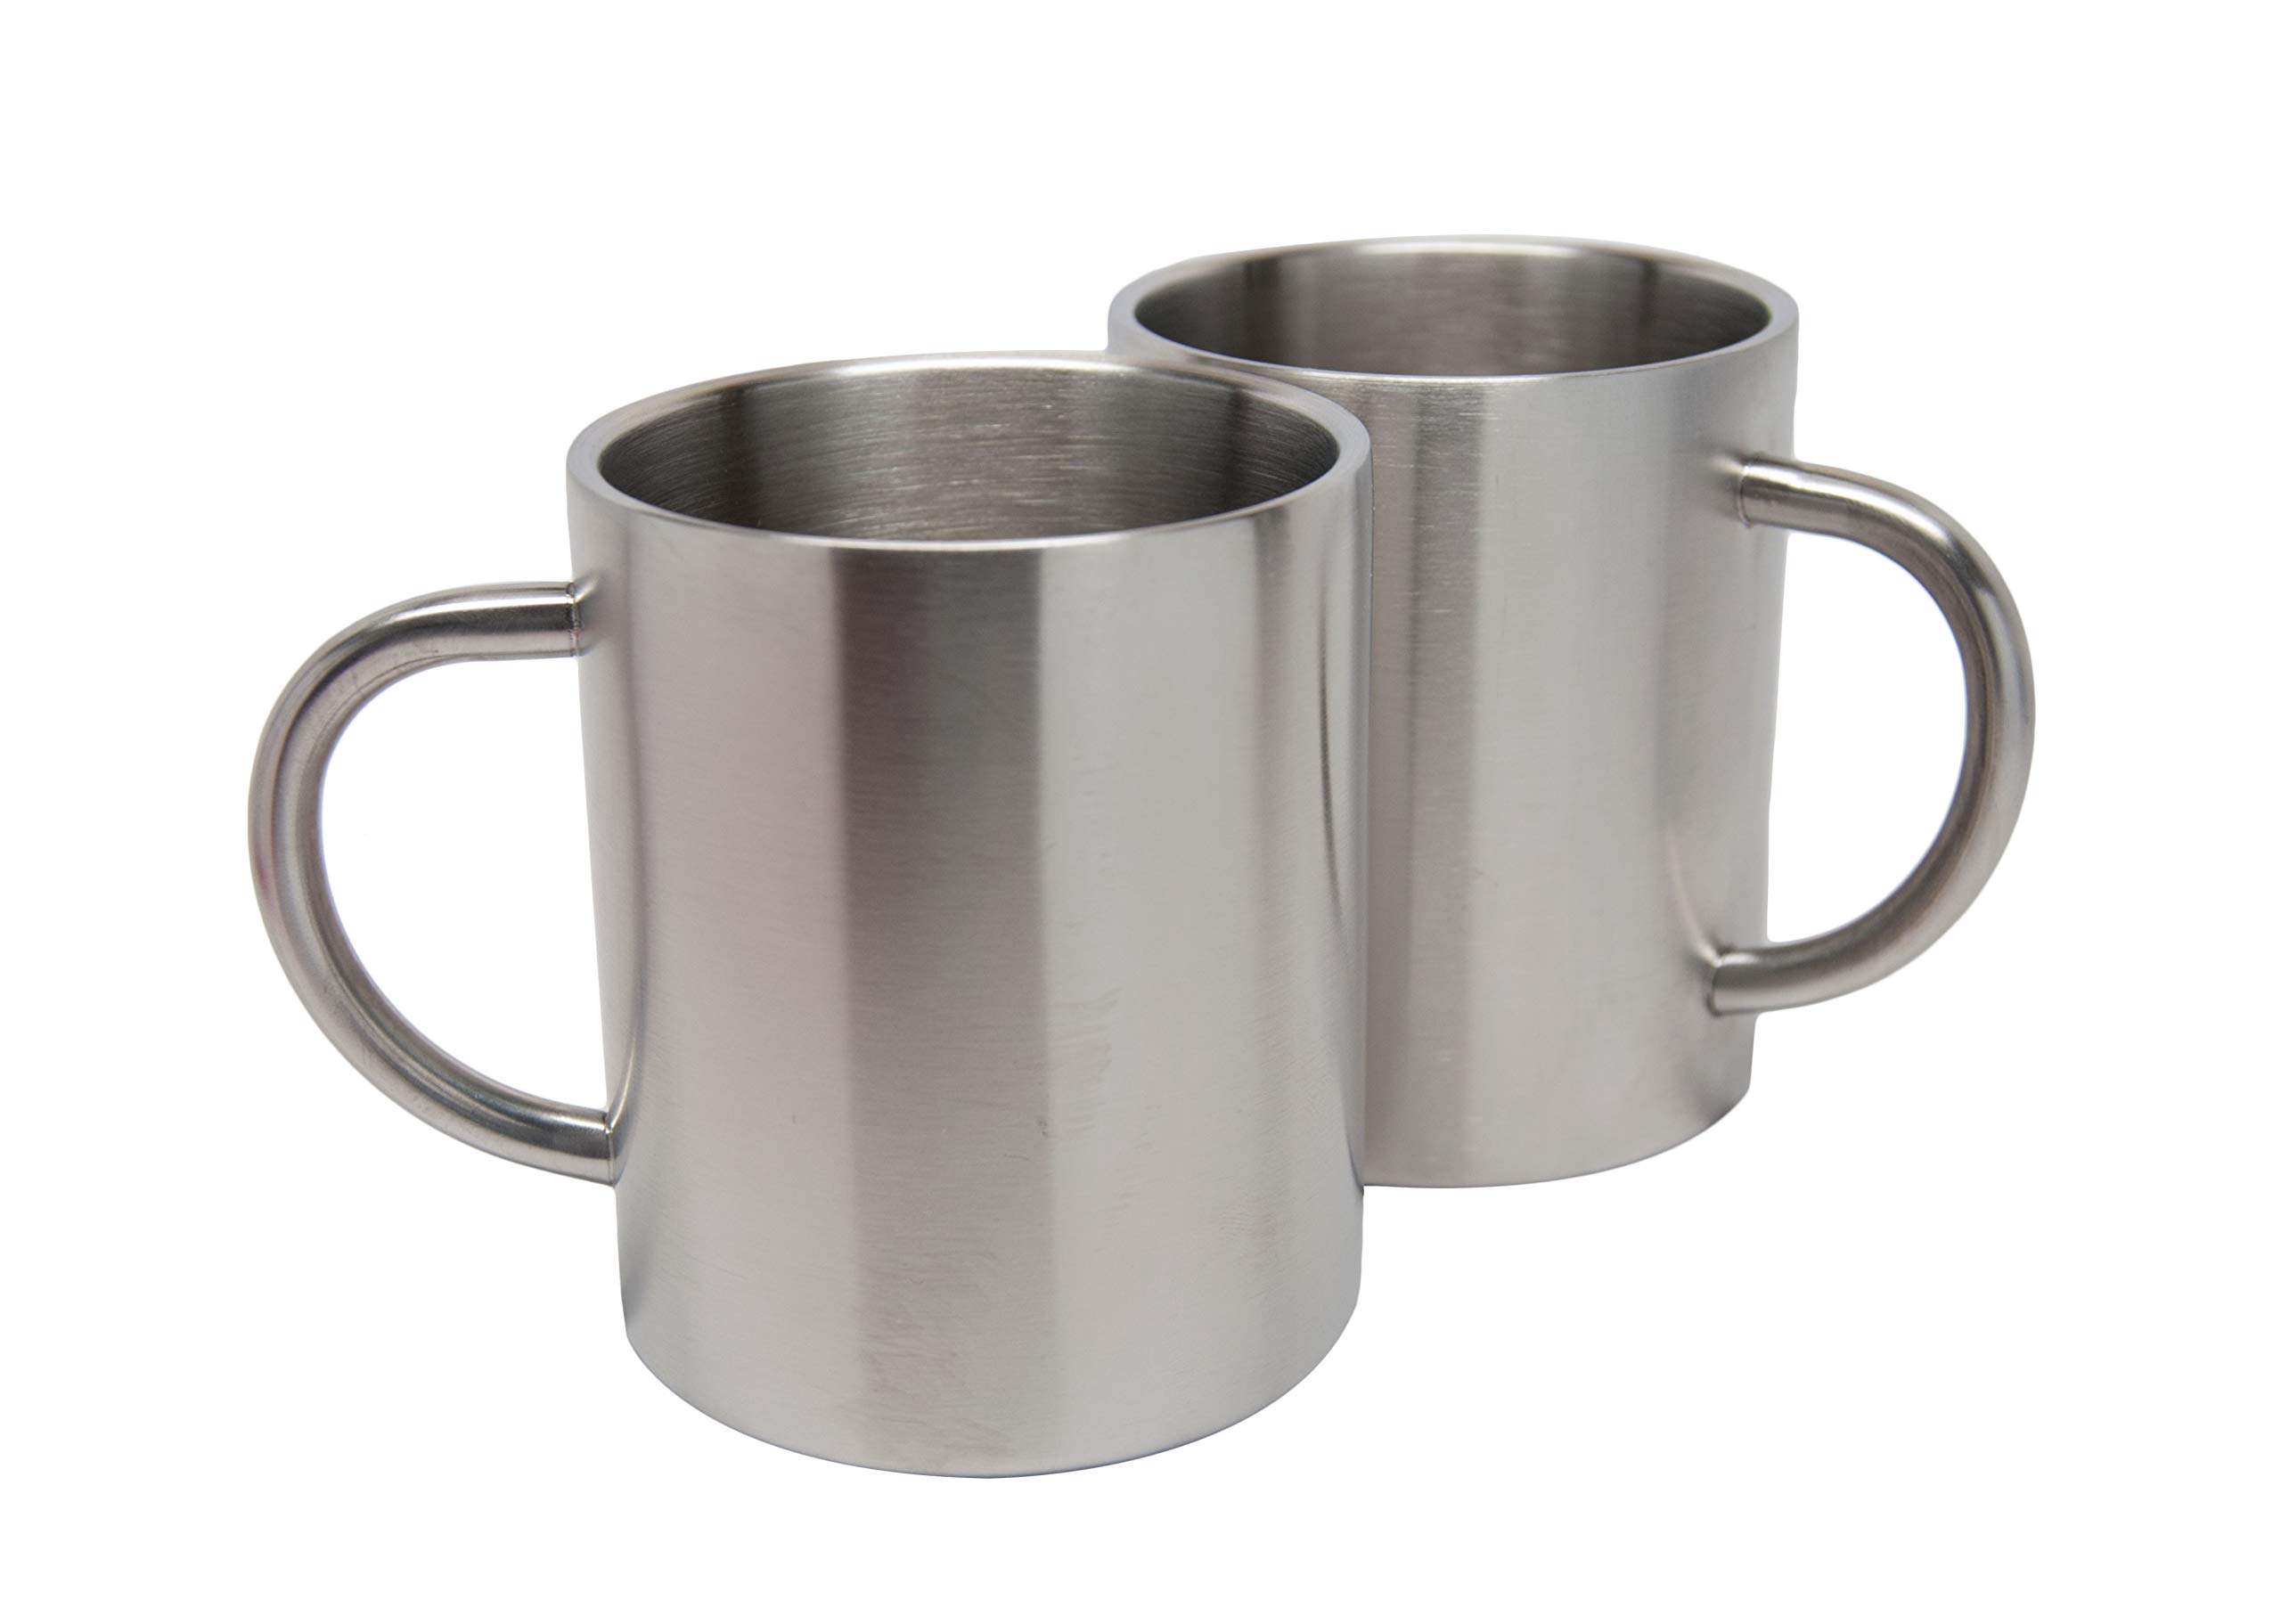 2 Pack Stainless Steel 15 Oz Double Walled Camping Cups 100% BPA Free Metal Mugs Outdoor Camp Cookware Military Surplus BBQ Hunting Accessories Bar BQ 4 Inch